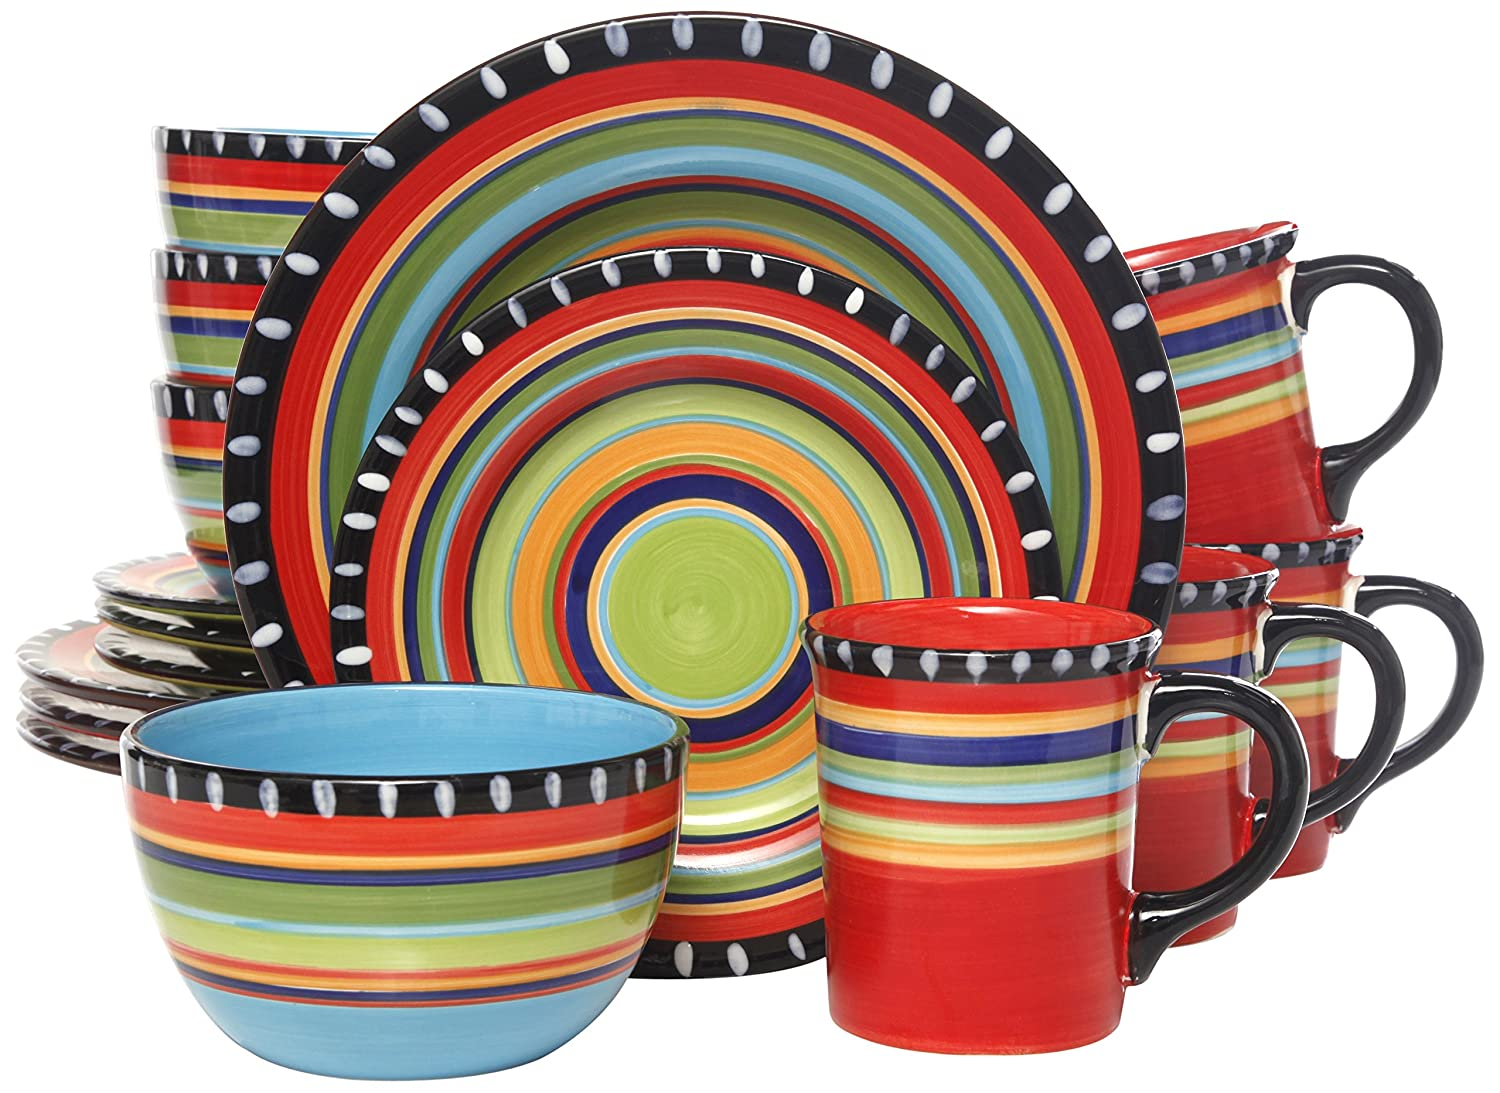 Superieur Amazon.com | Gibson Elite Pueblo Springs 16 Piece Dinnerware Set,  Multicolor: Serveware